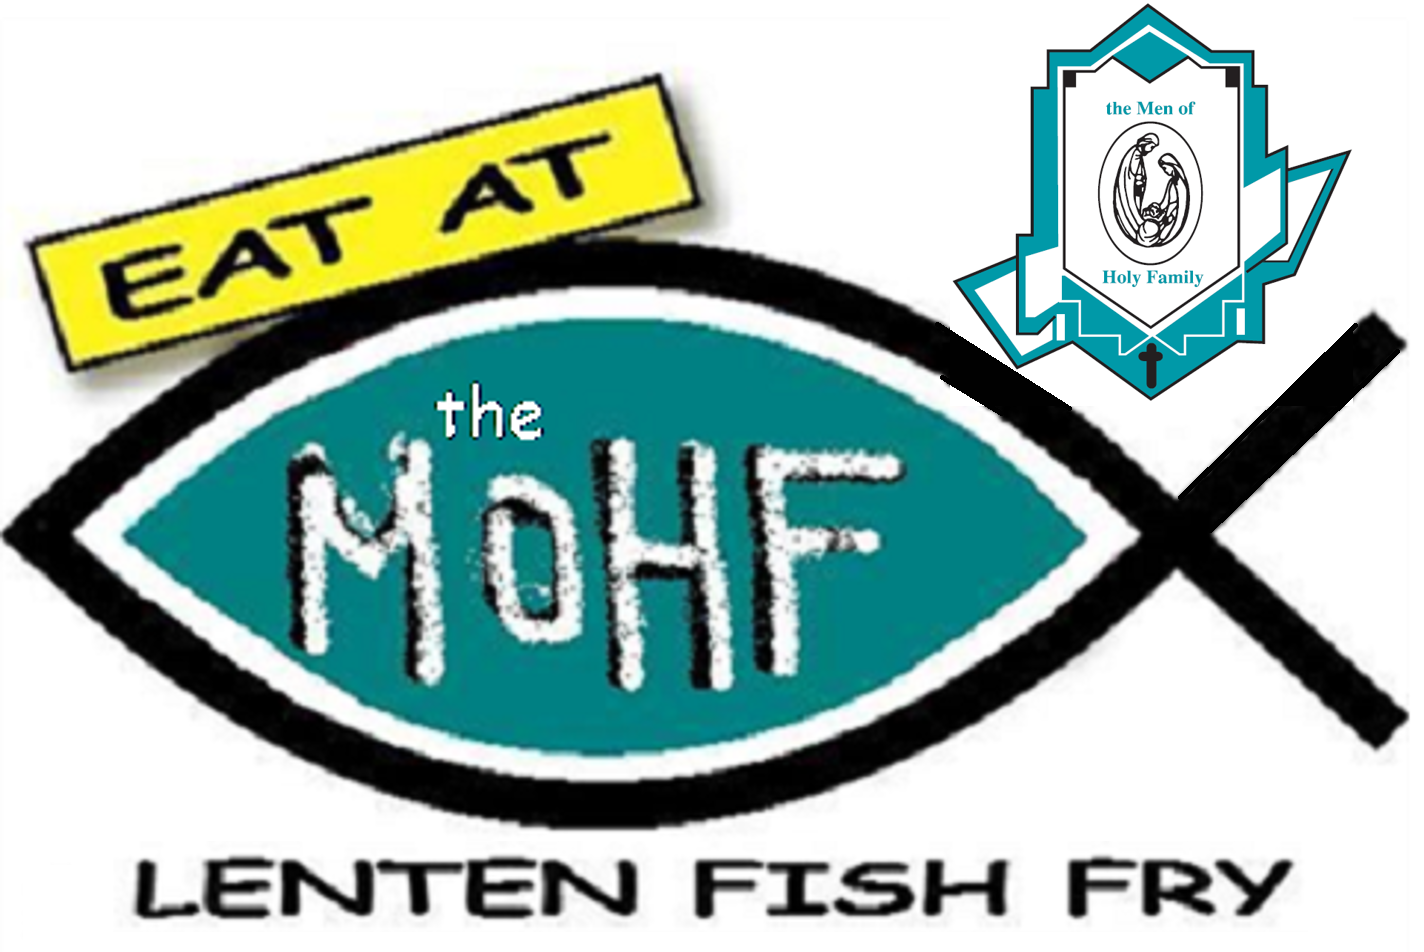 Lenten Fish Fry dinners offered by the Men of Holy Family